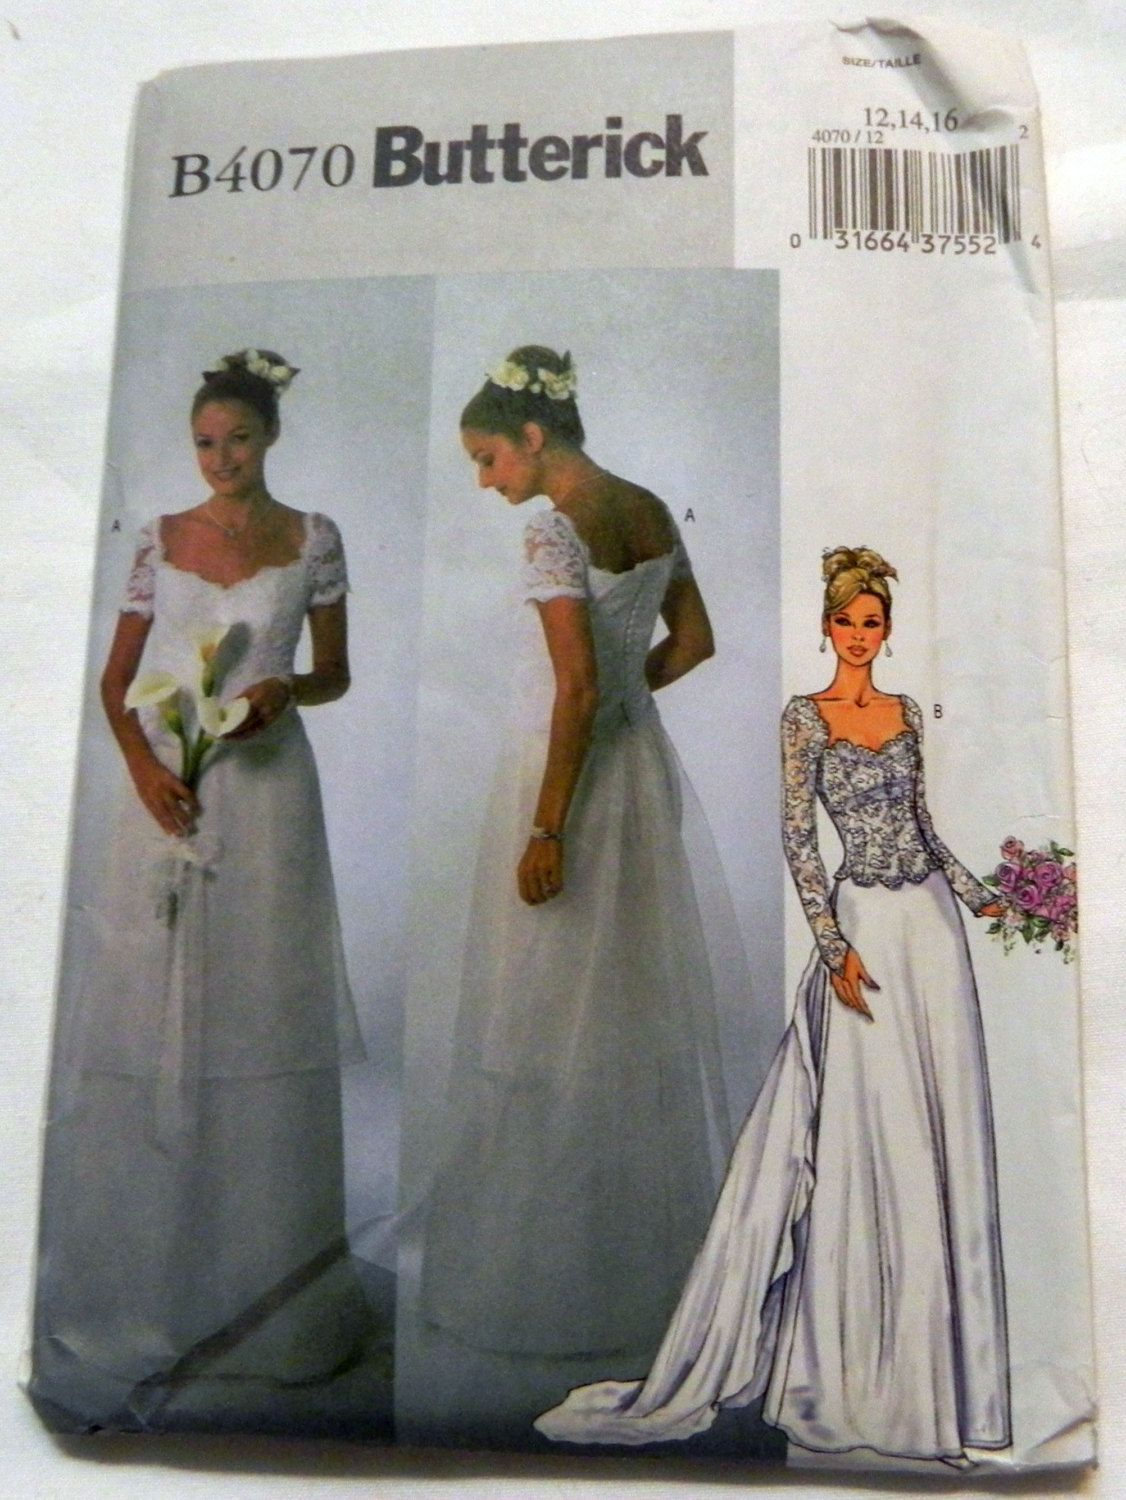 Wedding Dress Bridal Gown With Lace Overlays Sweetheart Etsy Bridal Dress Patterns Bridal Sewing Patterns Wedding Gown Patterns